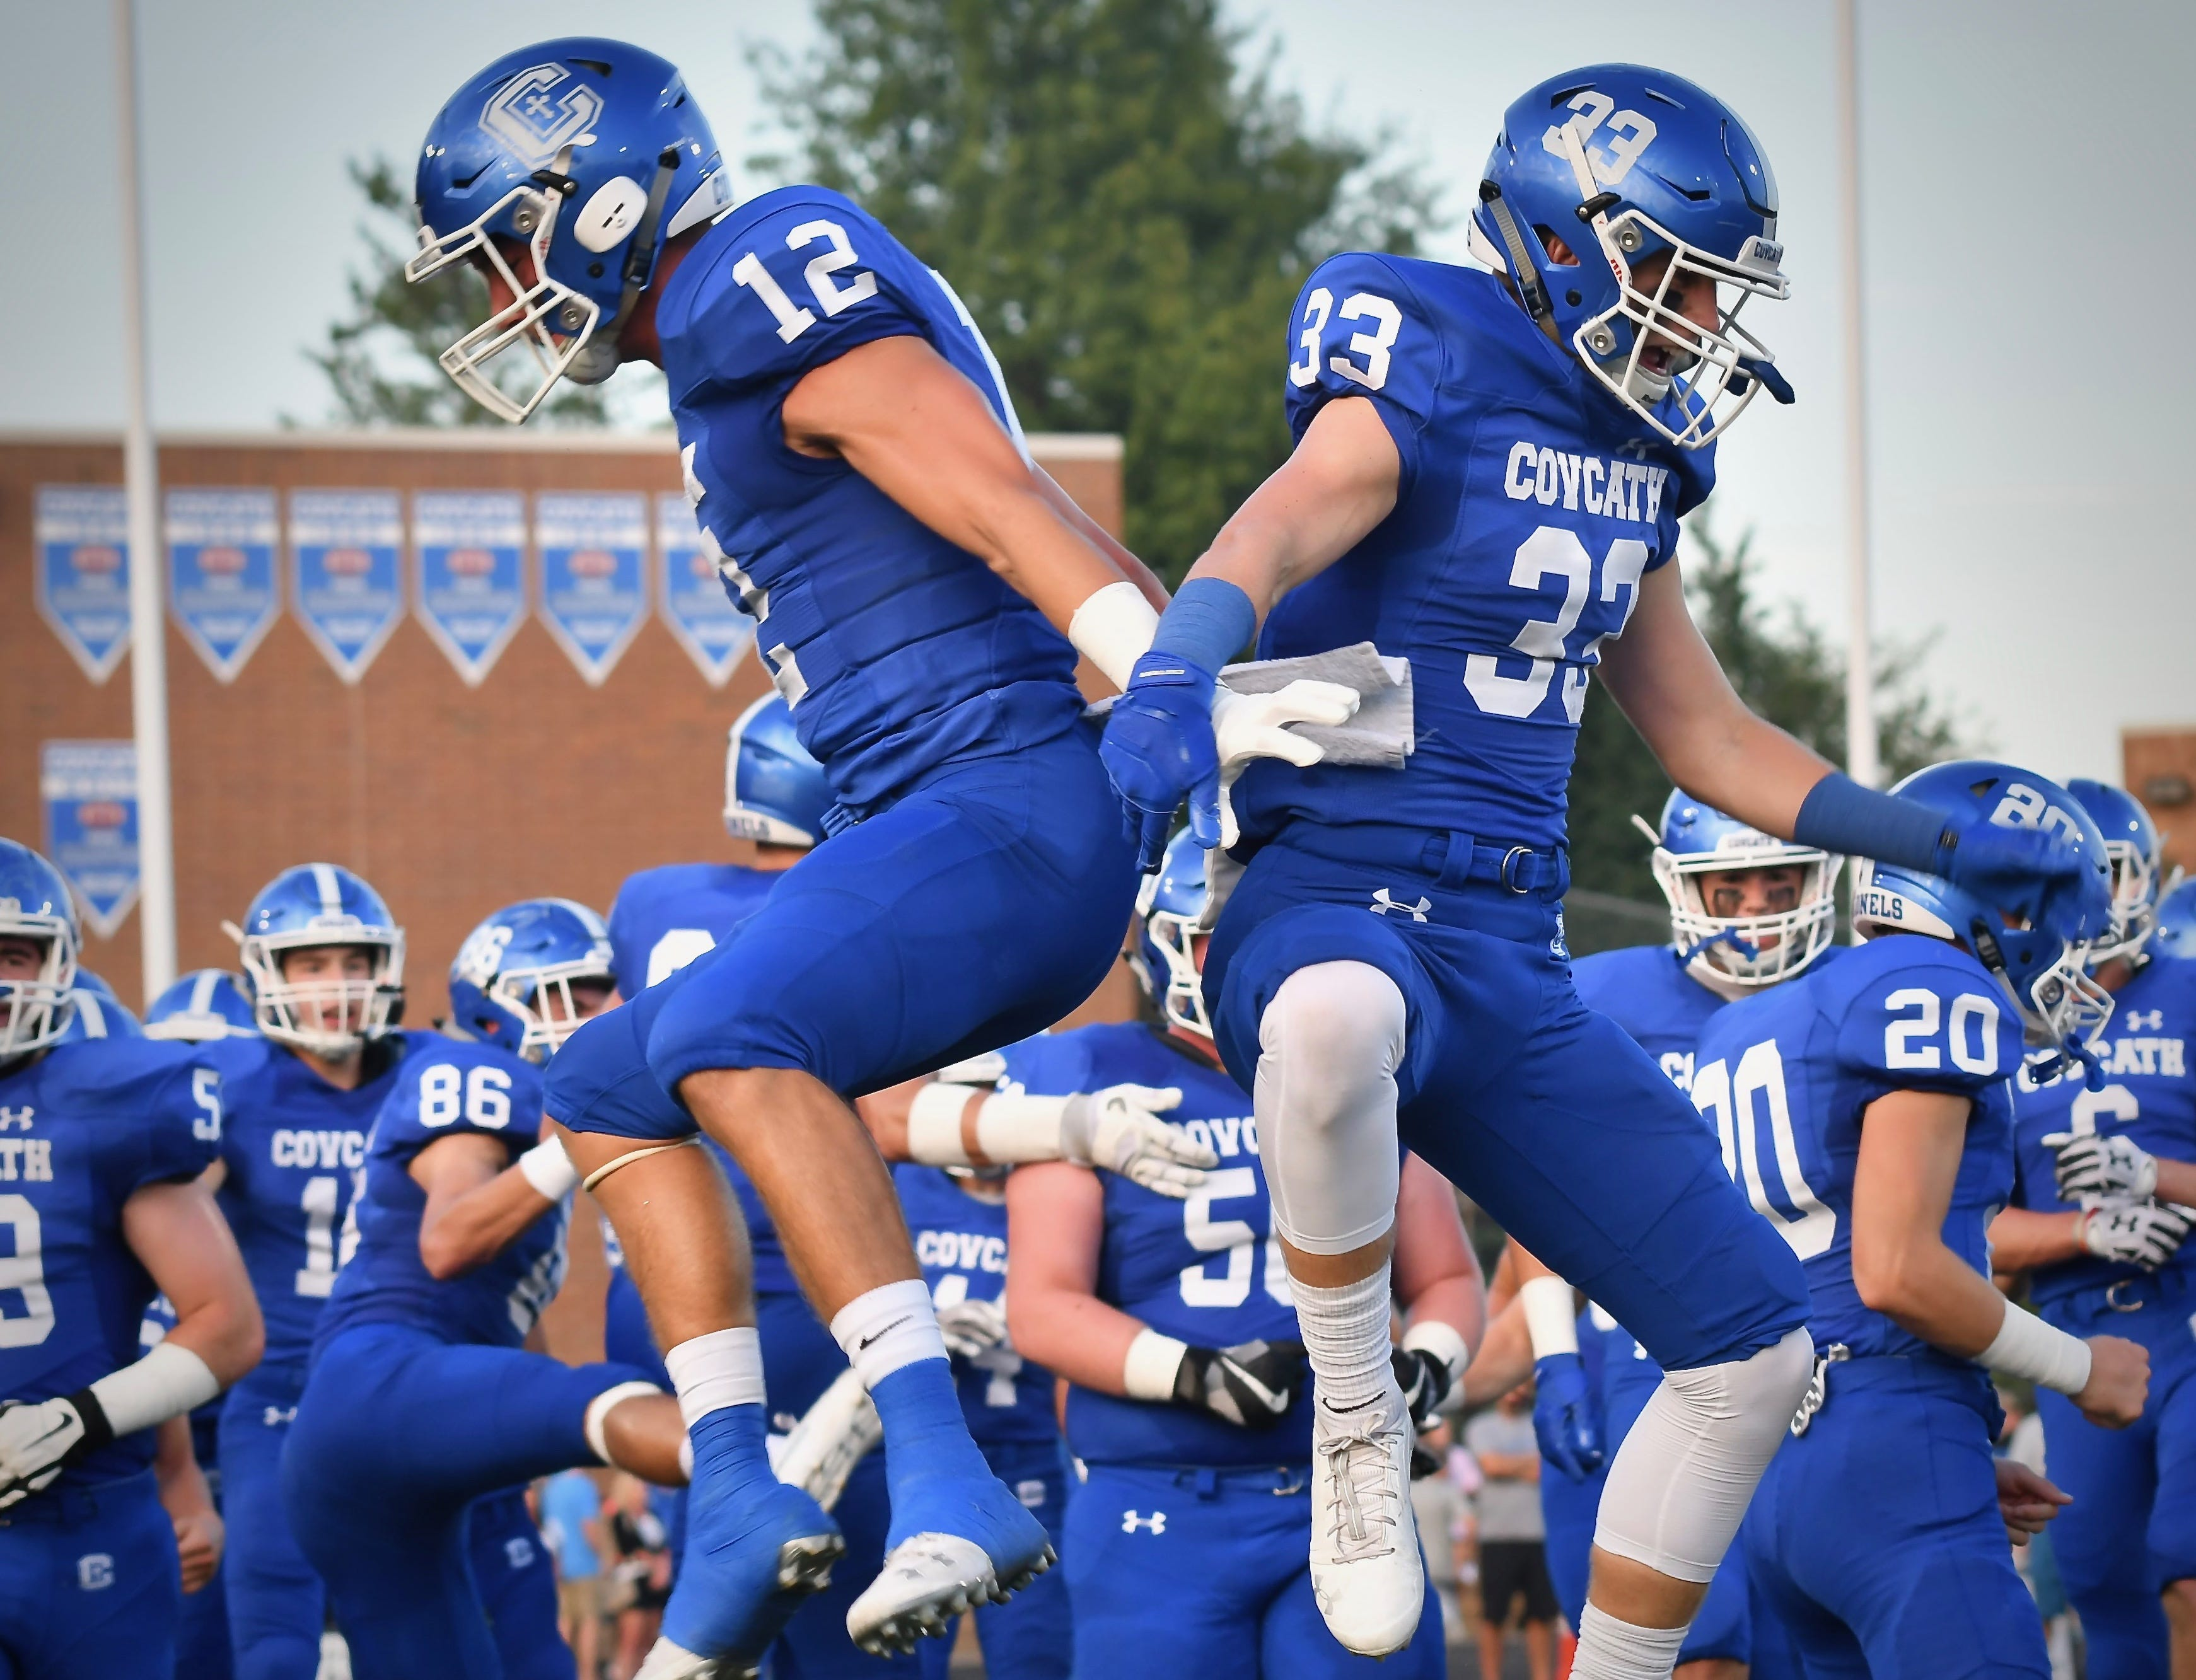 The Covington Catholic Colonels take the field Friday, Sept. 14, 2018.